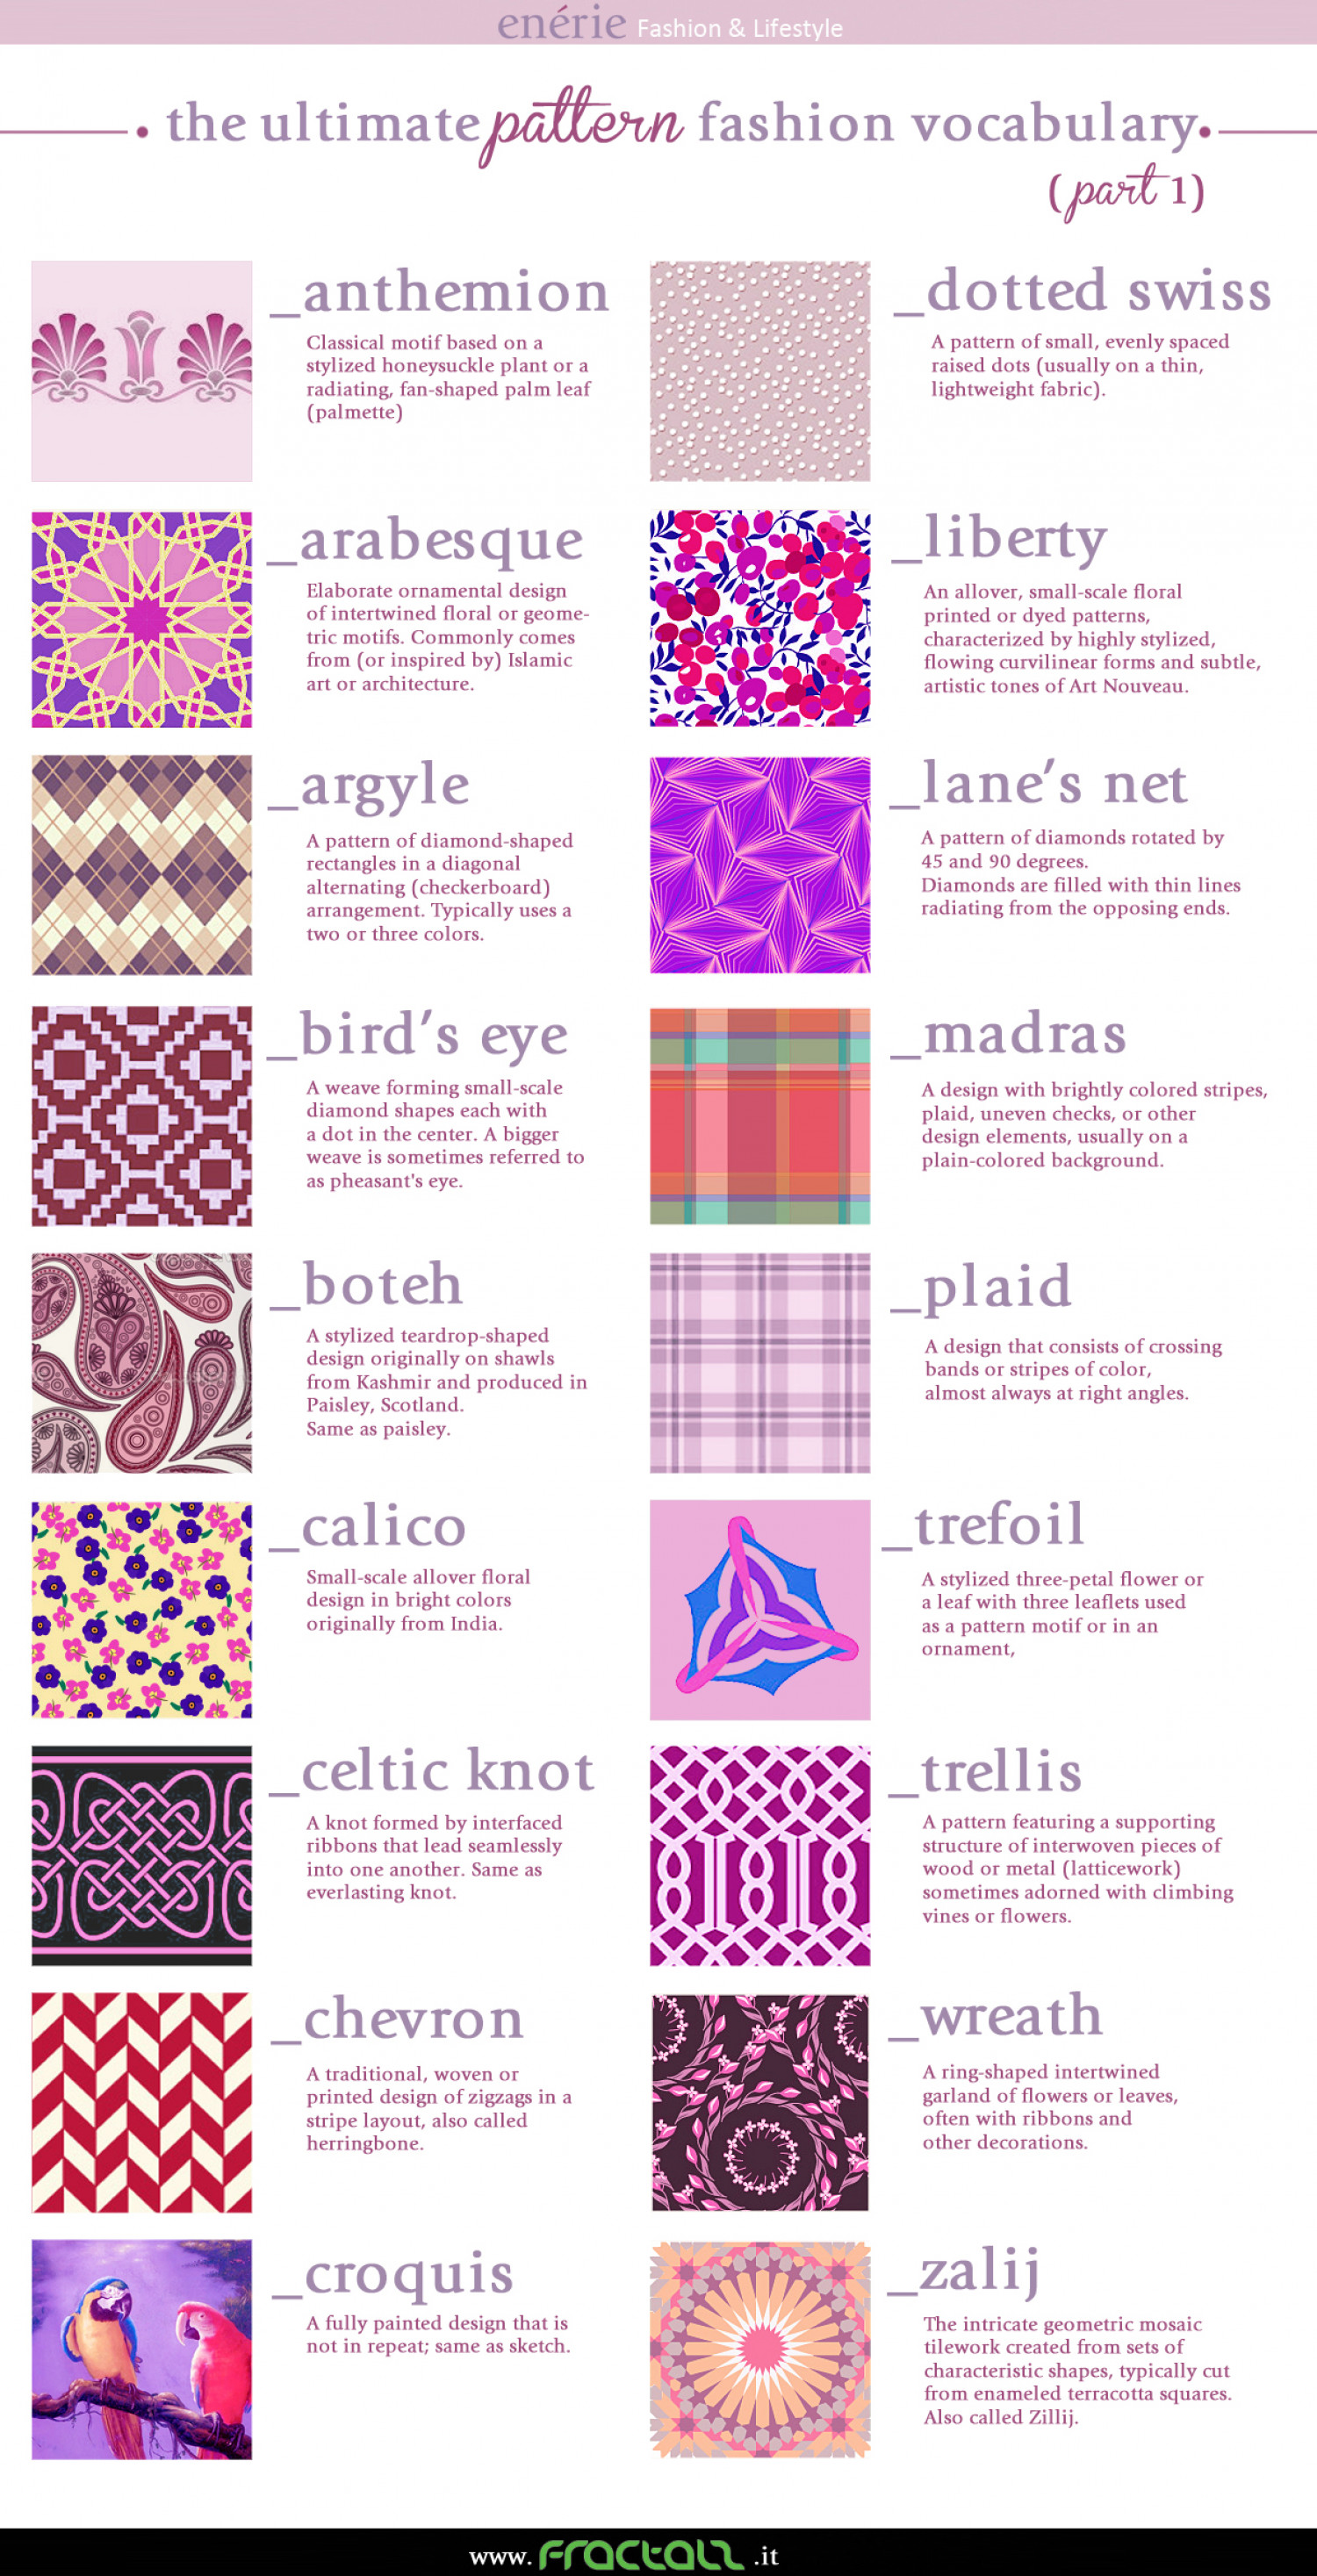 The ultimate pattern fashion vocabulary Fashion style categories list